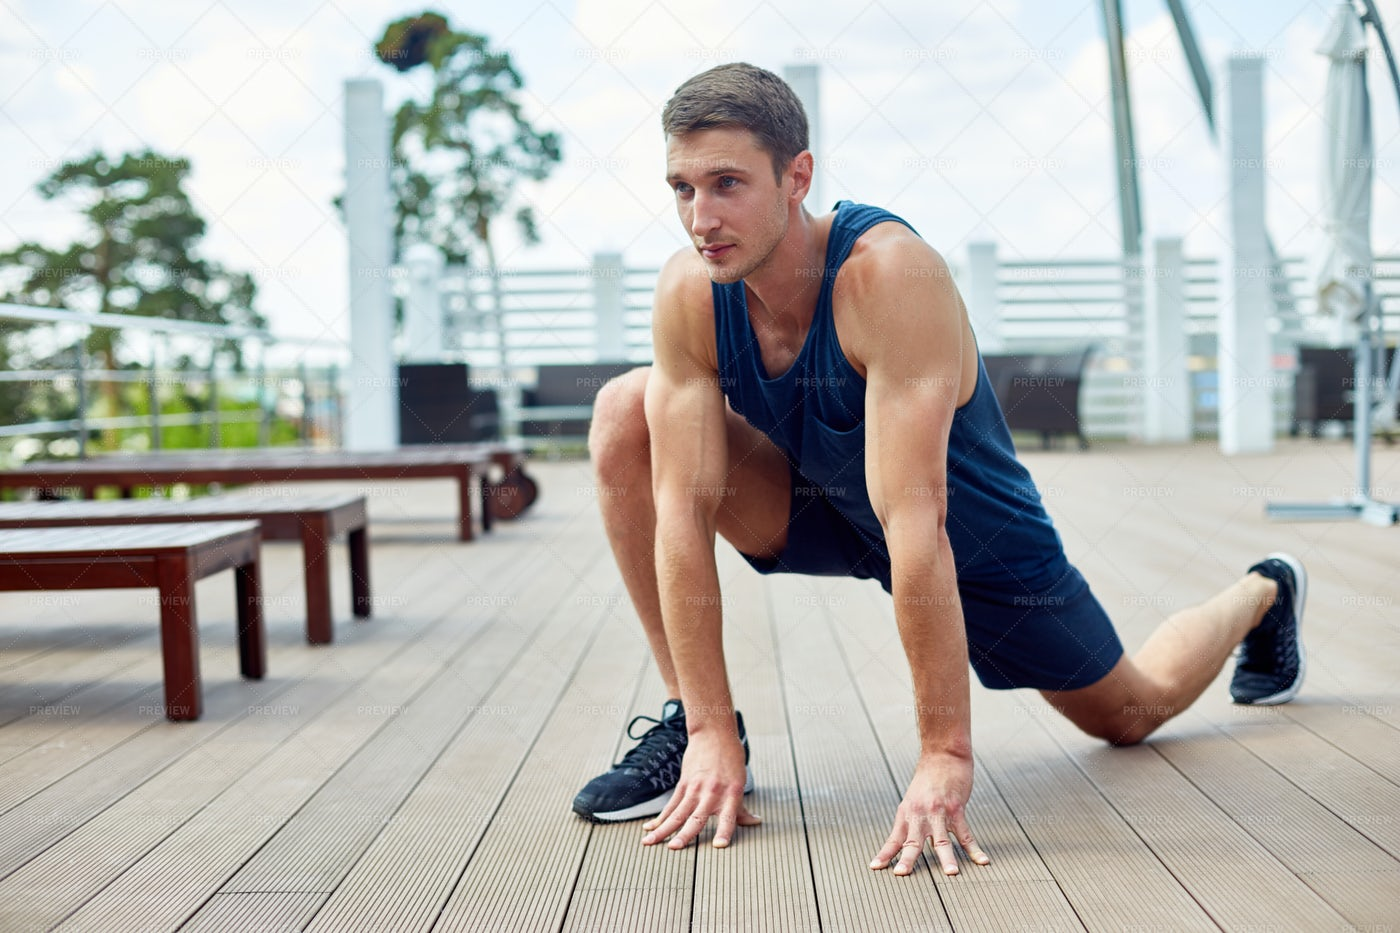 Handsome Man Working Out Outdoors: Stock Photos